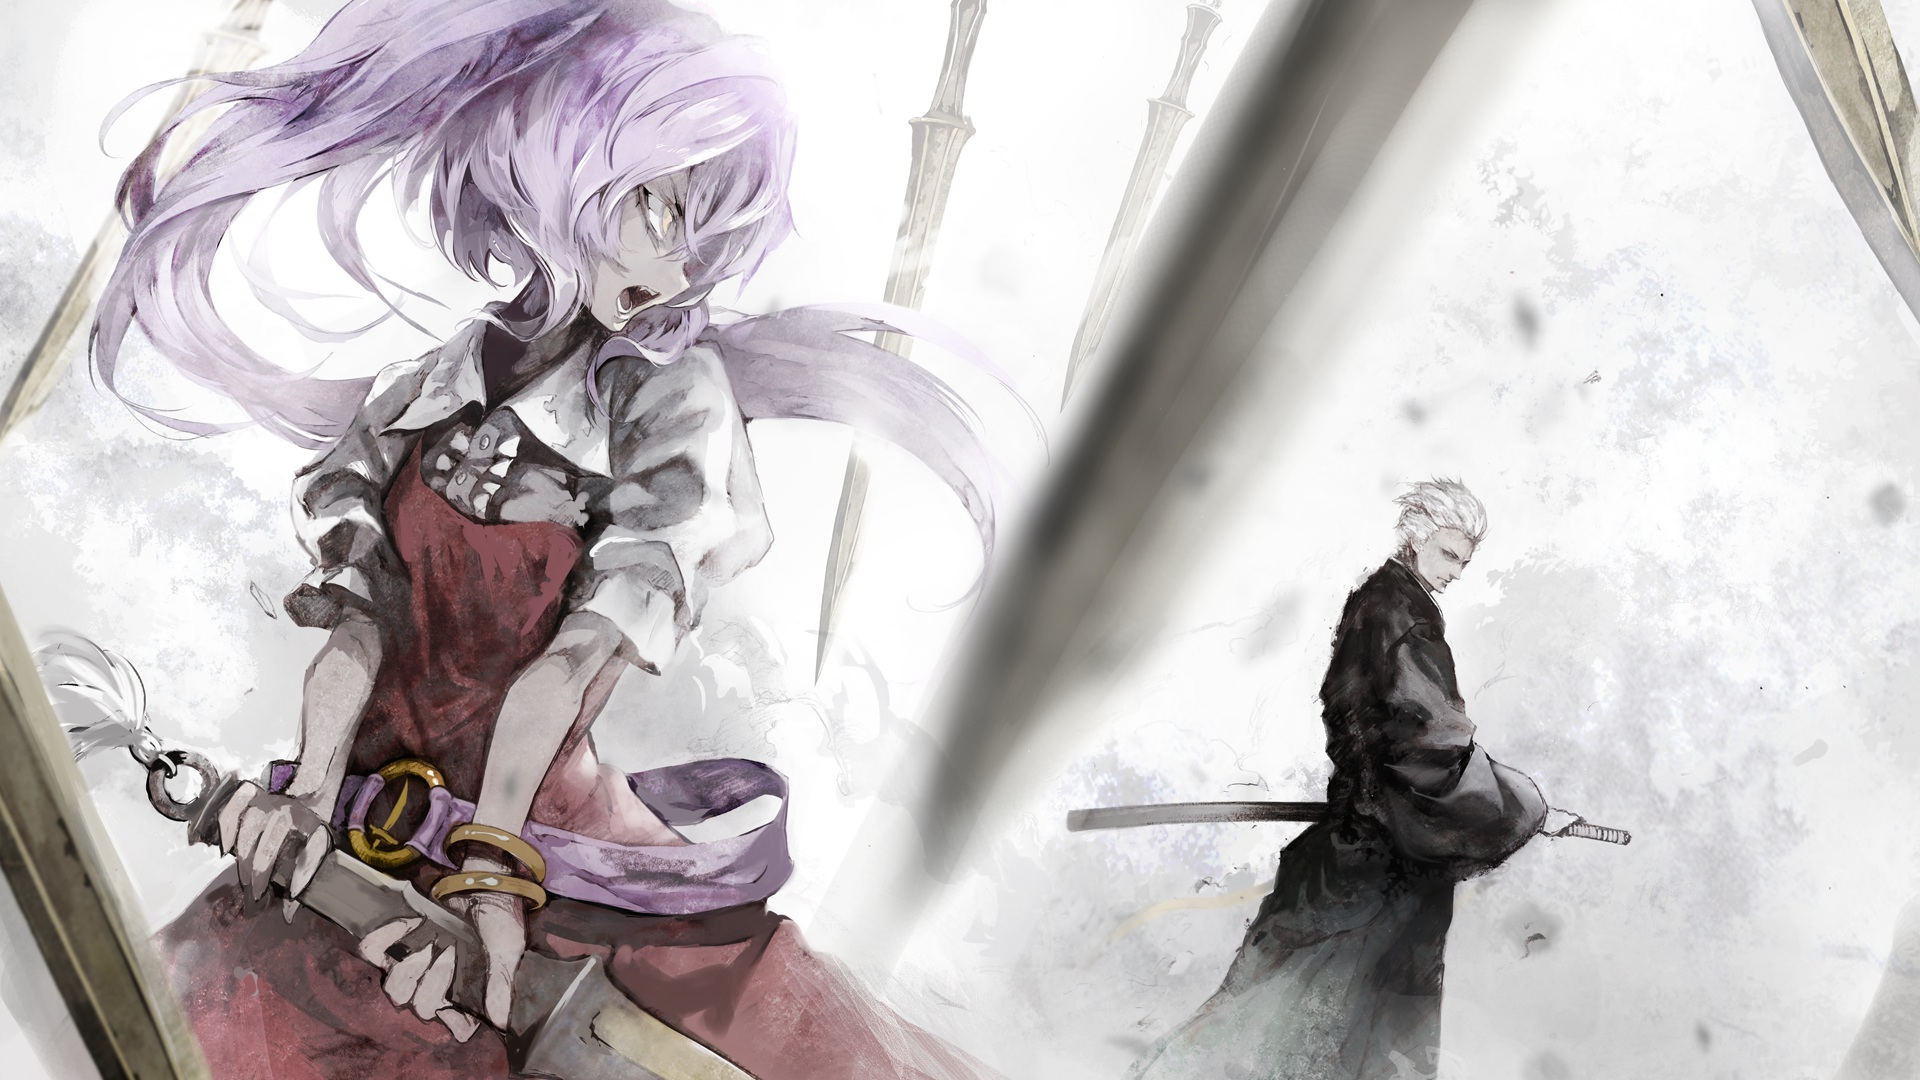 Banpai-akira-crossover-devil-may-cry-katana-purple-hair-sword-touhou-vergil-watatsuki-no-yorihime-we-wallpaper-wp3802779